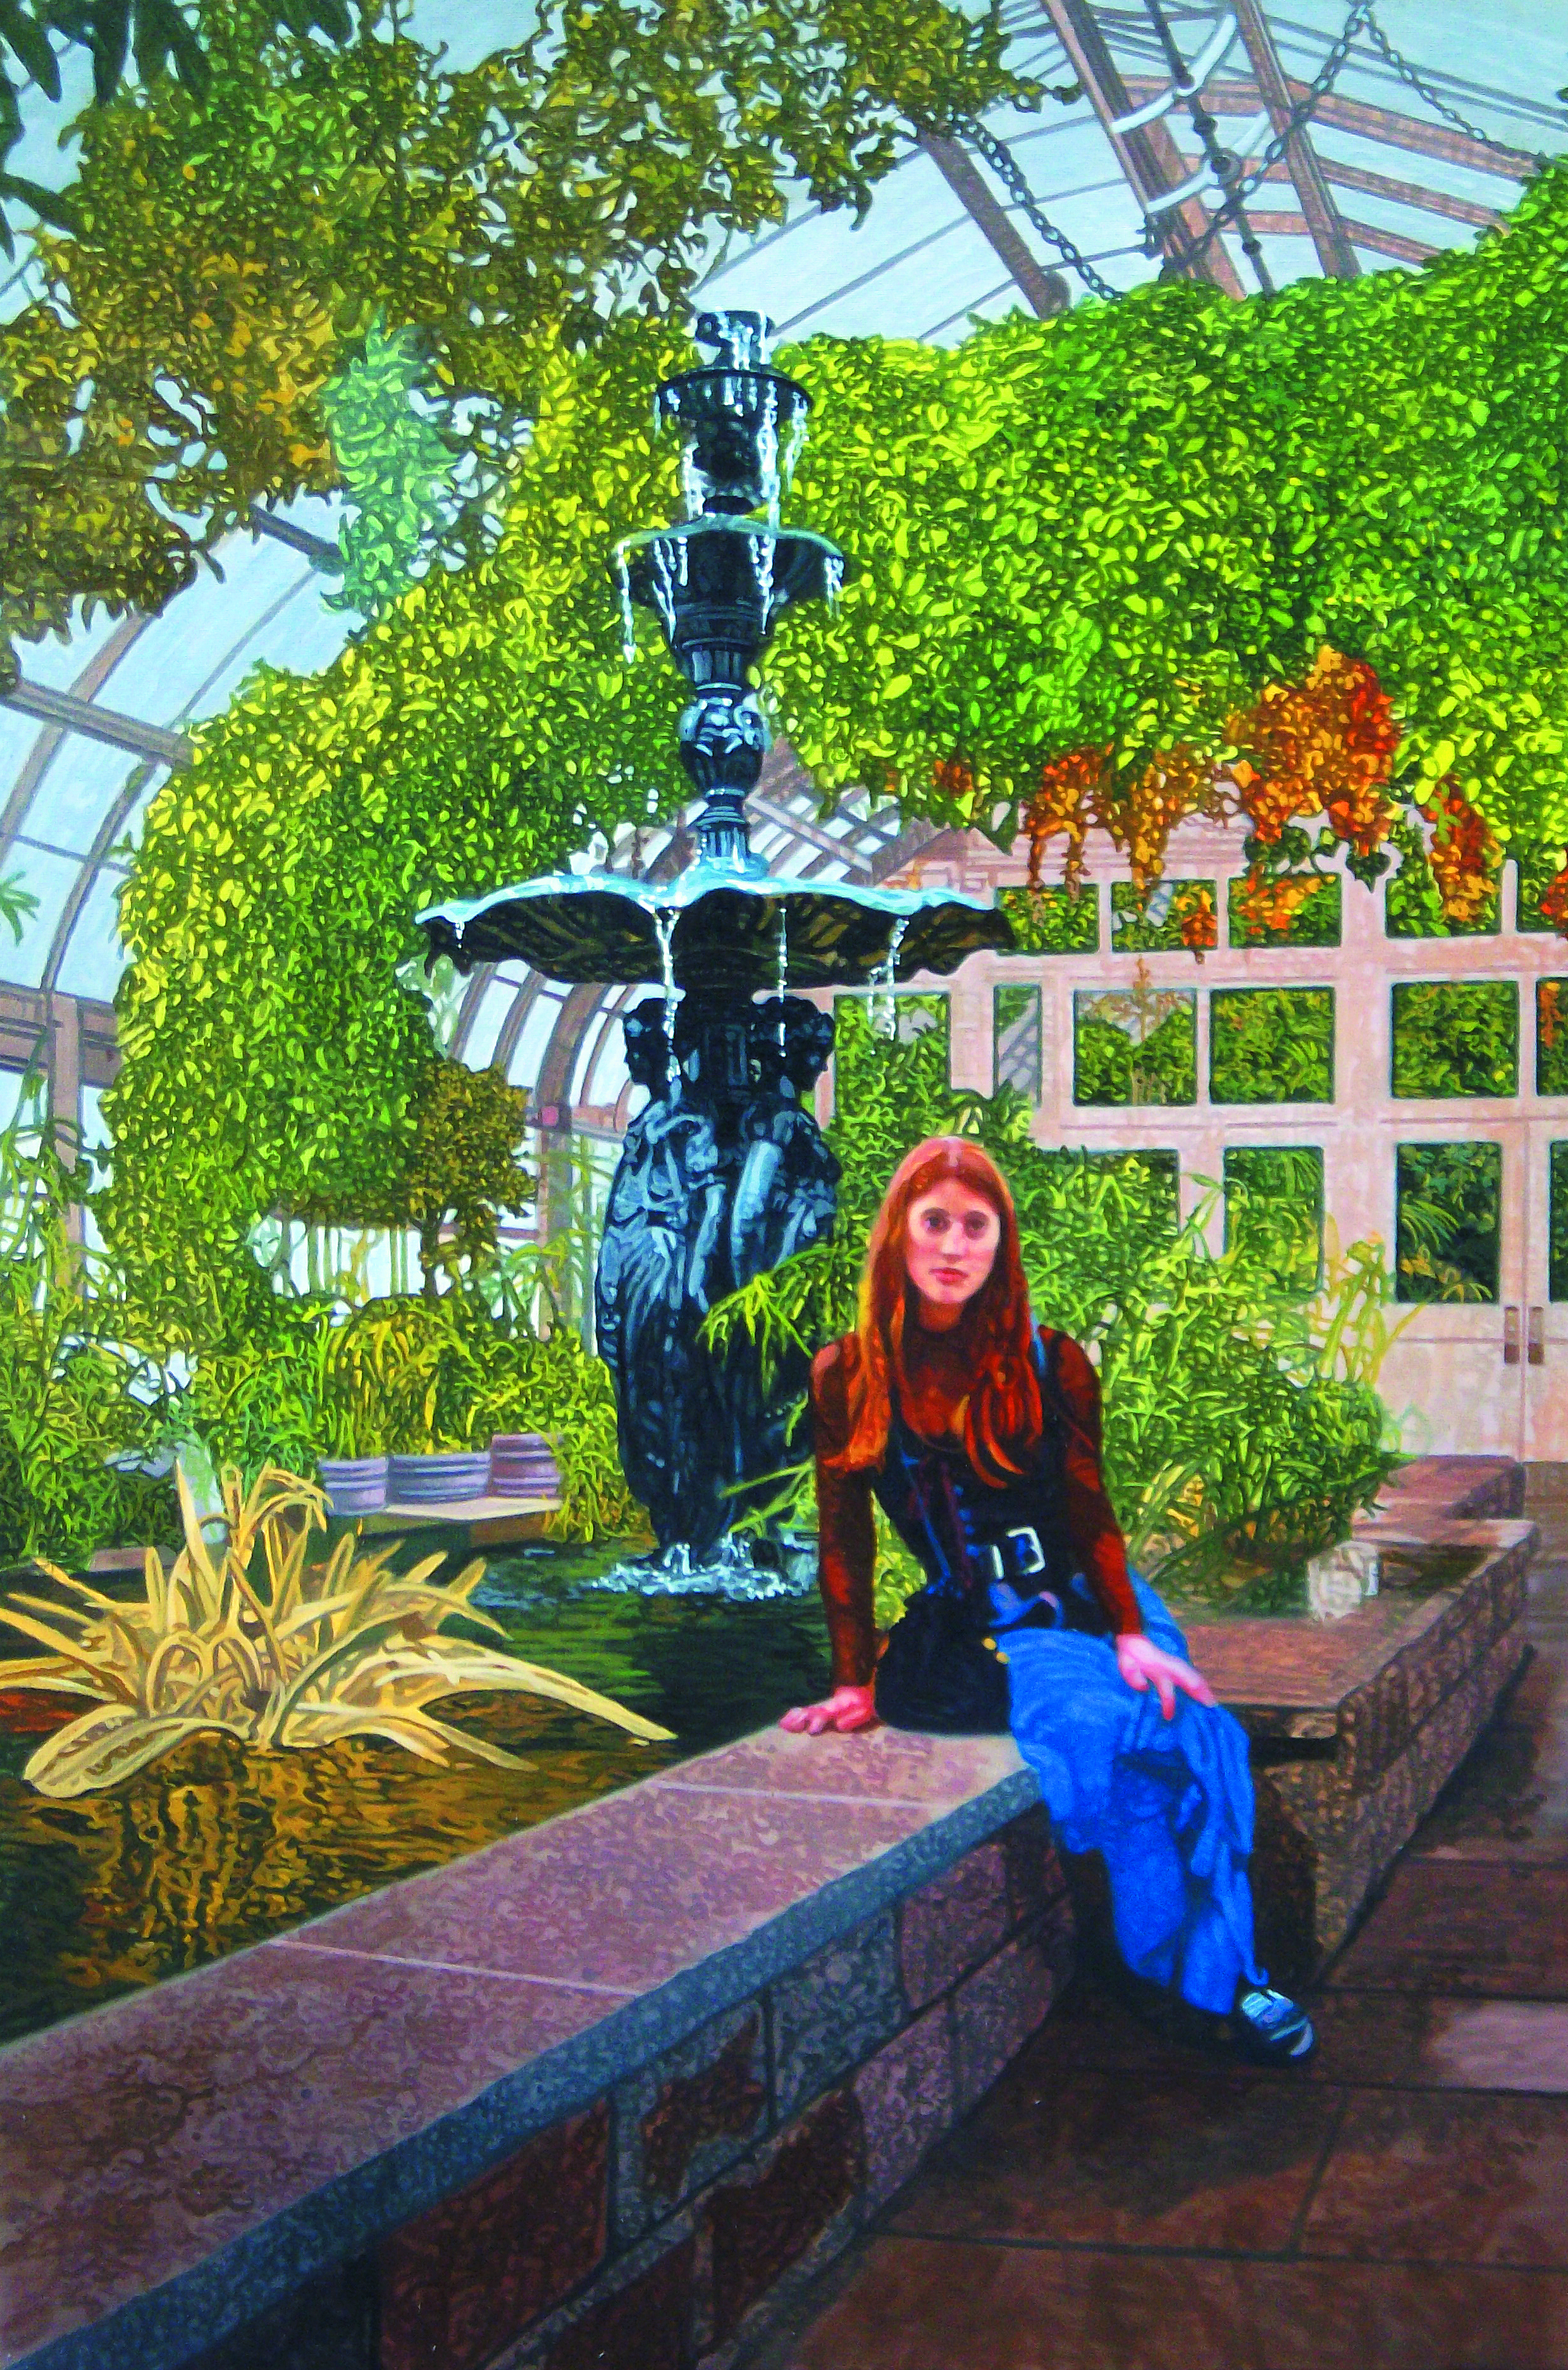 "Eve in the Garden #2 , 2016, Oil on Canvas, 36"" x 24"".  A young woman sits on the concrete edge of a fountain in a greenhouse, surrounded by leaves and flowers."